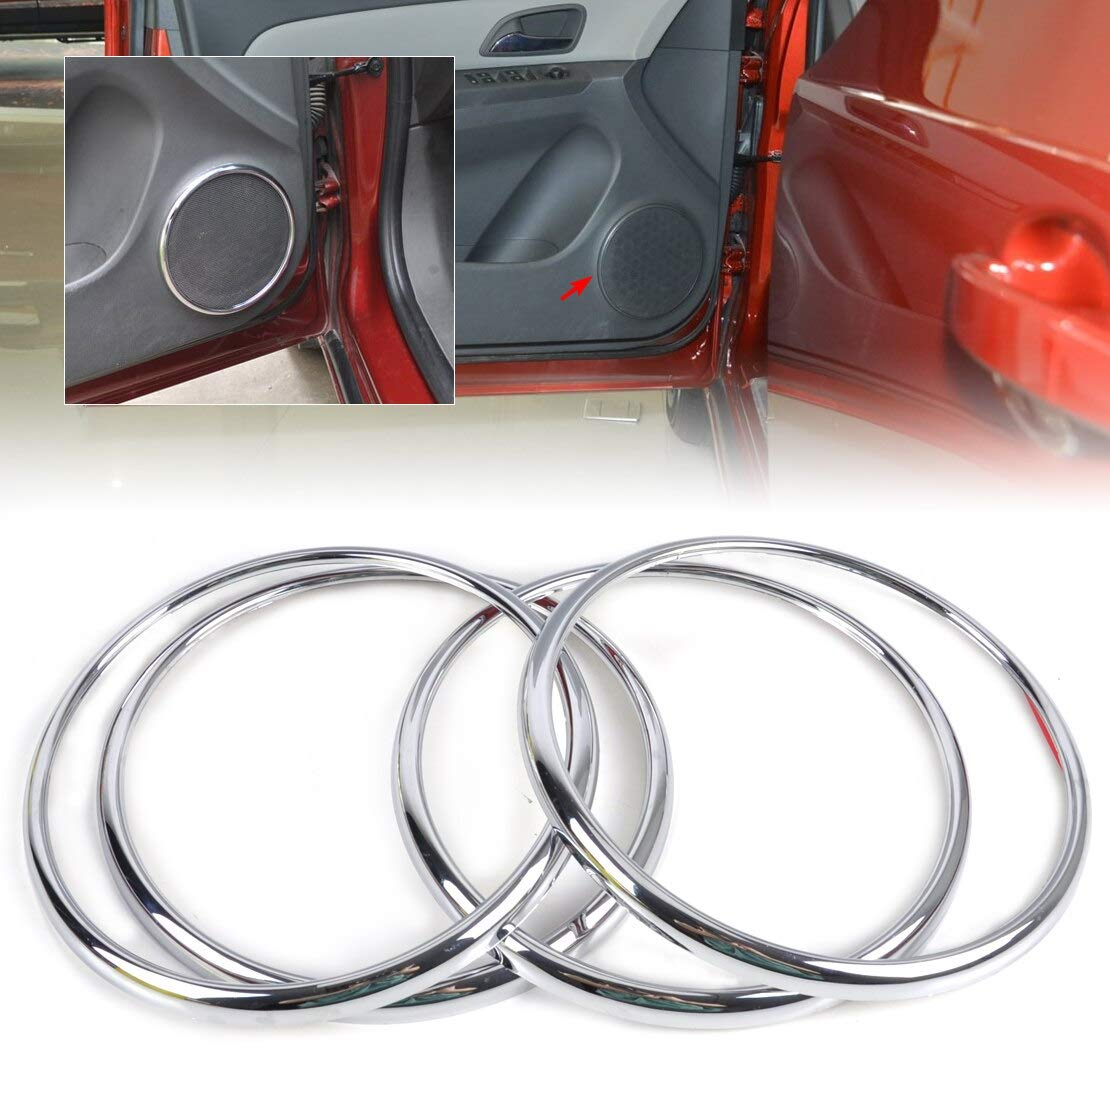 4Pcs Chrome Audio Speaker Stereo Decorative Ring Cover Loop For Chevrolet Holden Cruze 2009 2010 2011 2012 2013 2014